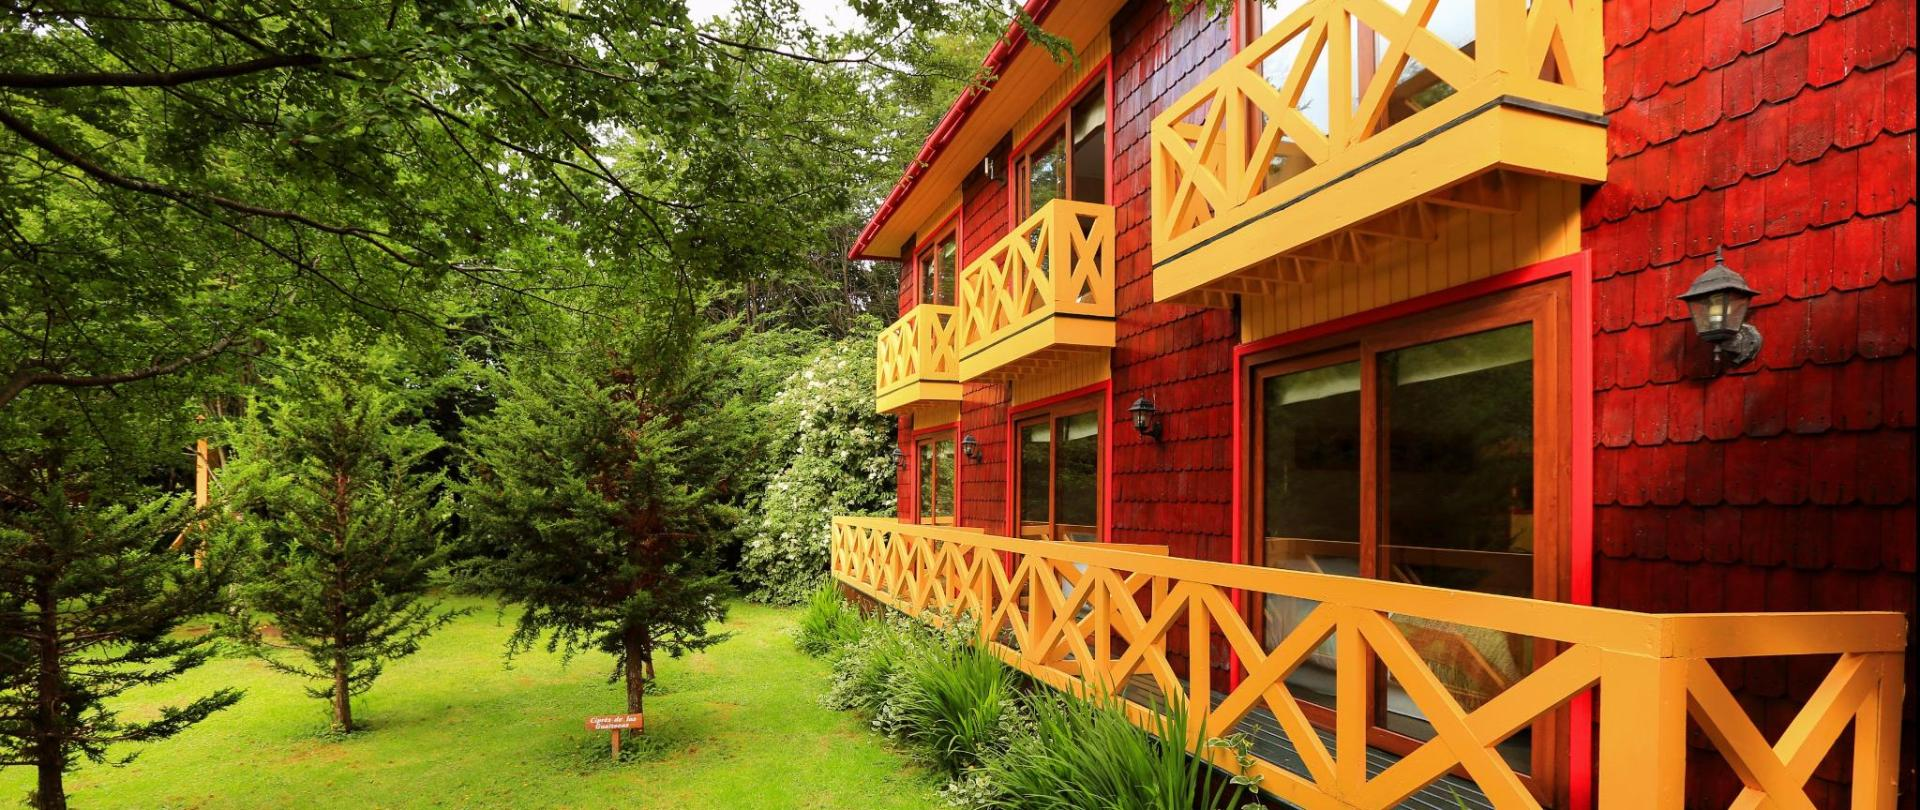 Hotel and Cabins Patagonia Green